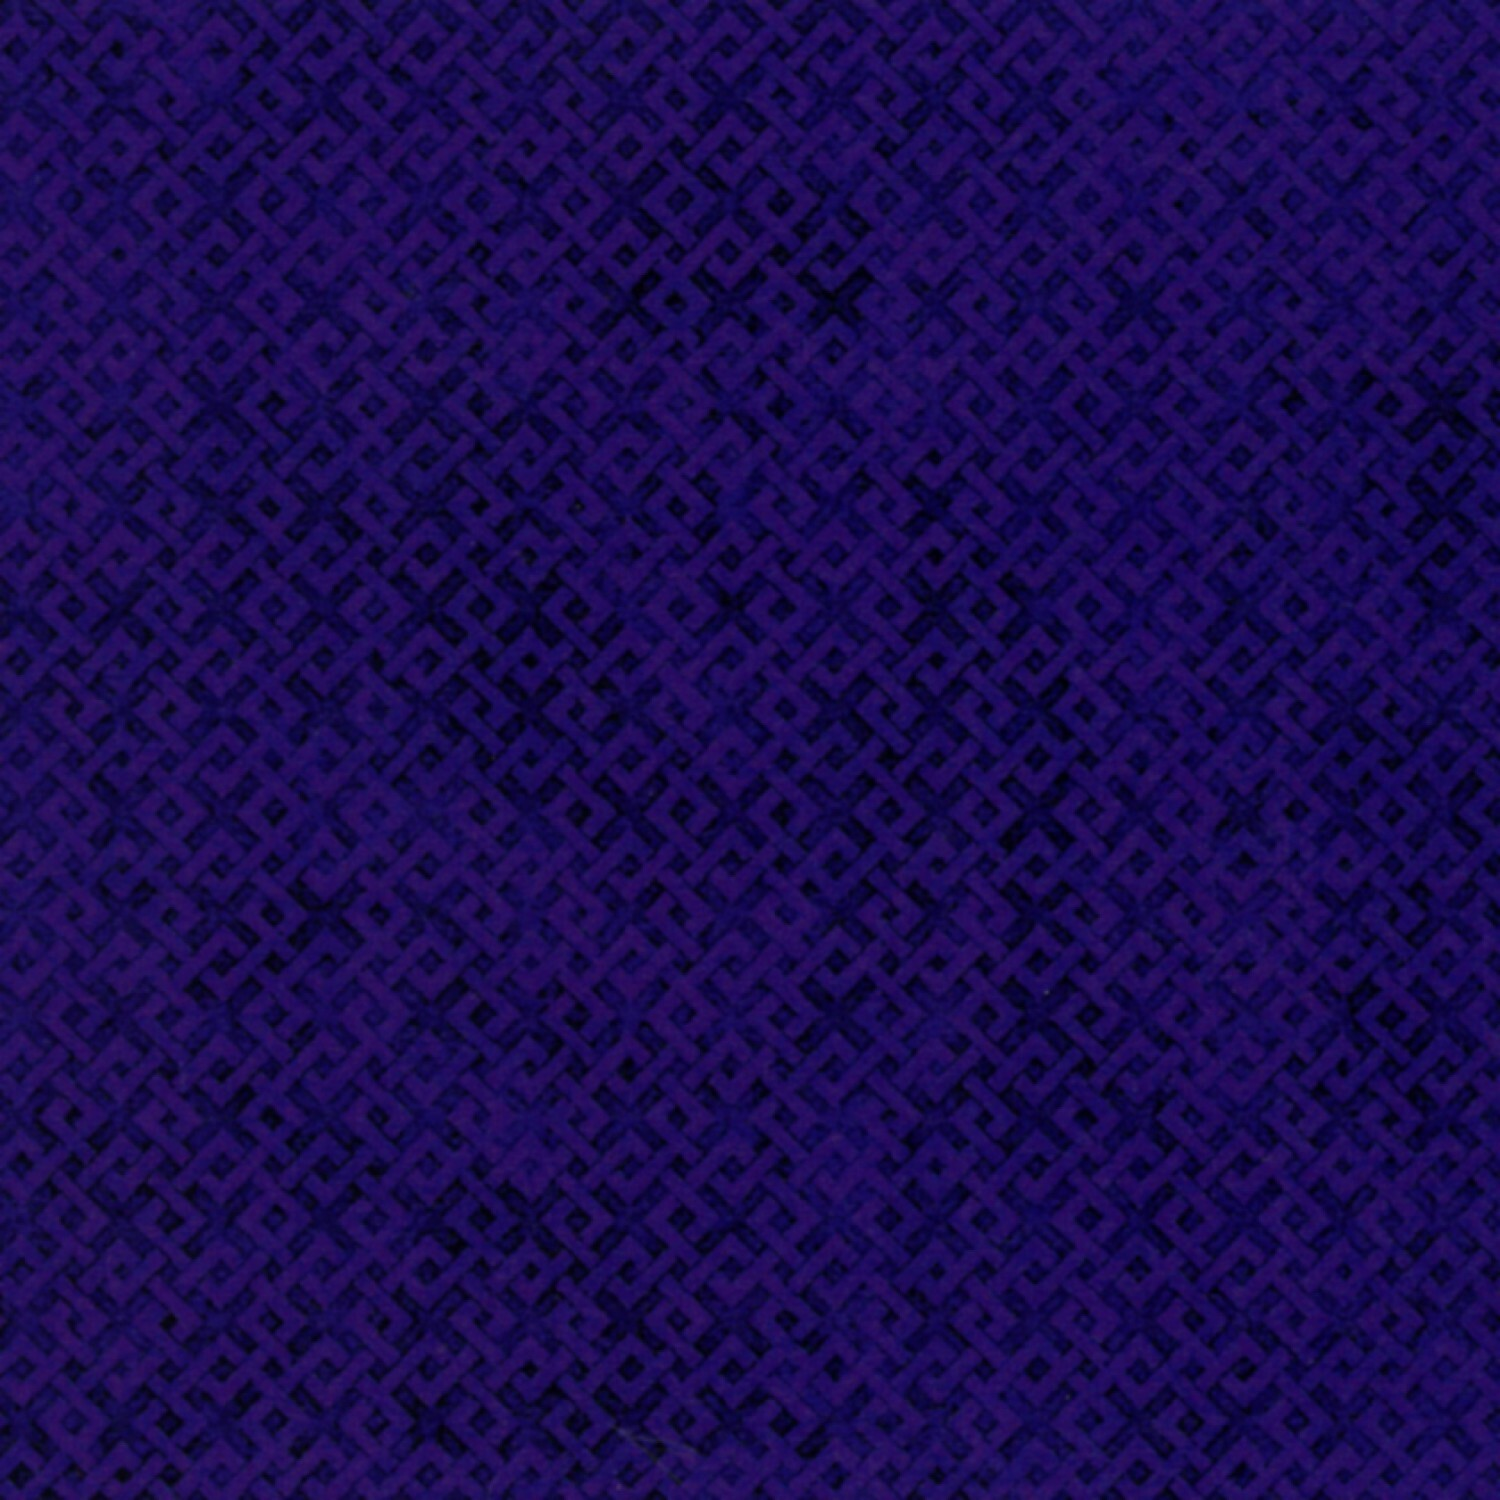 Purple Criss Cross - Wilmington Fabrics - 1/2m cut 56994